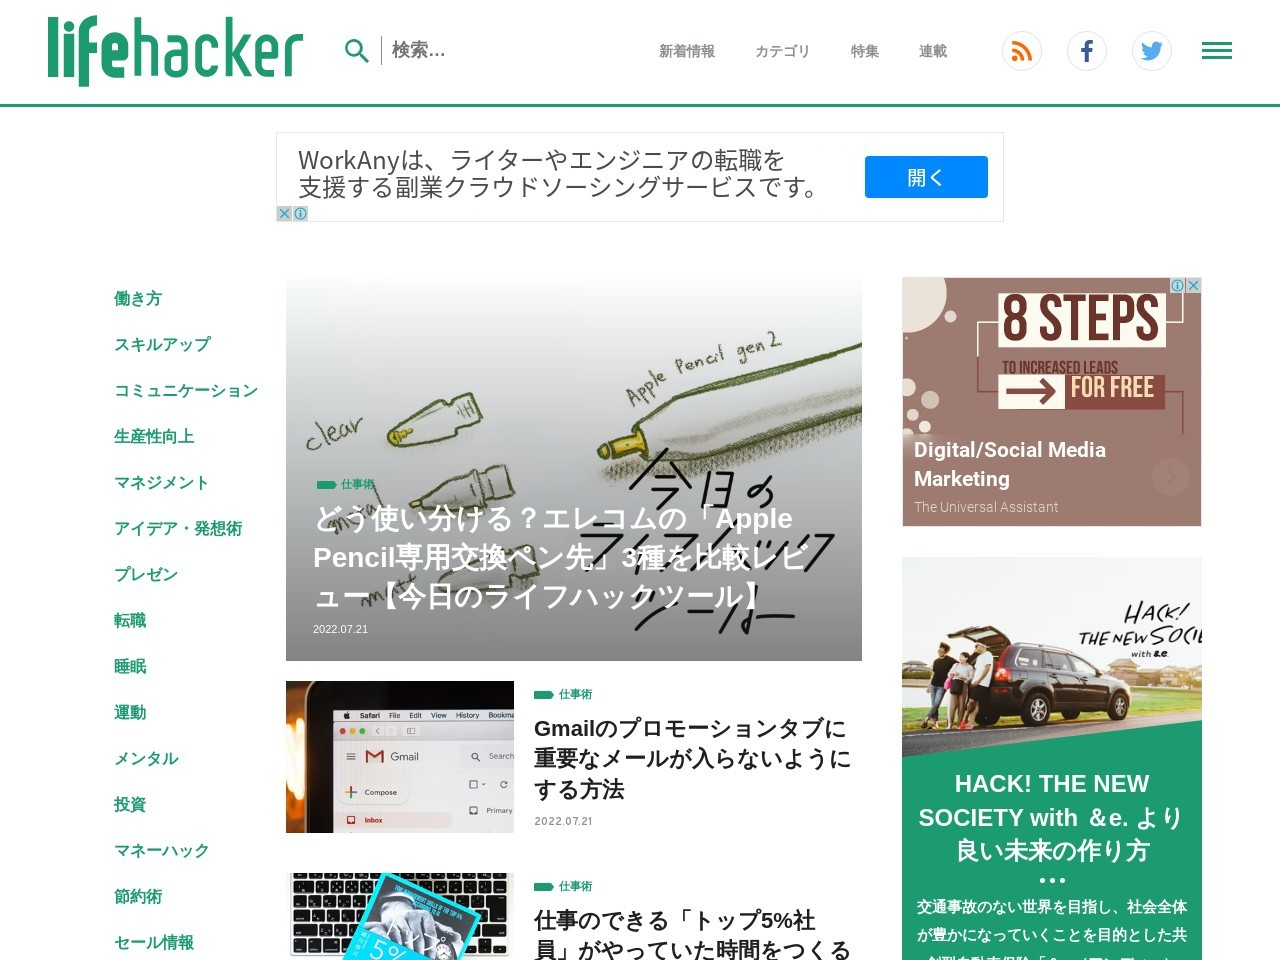 http://www.lifehacker.jp/upload_files/130414what_data_chrome.jpg